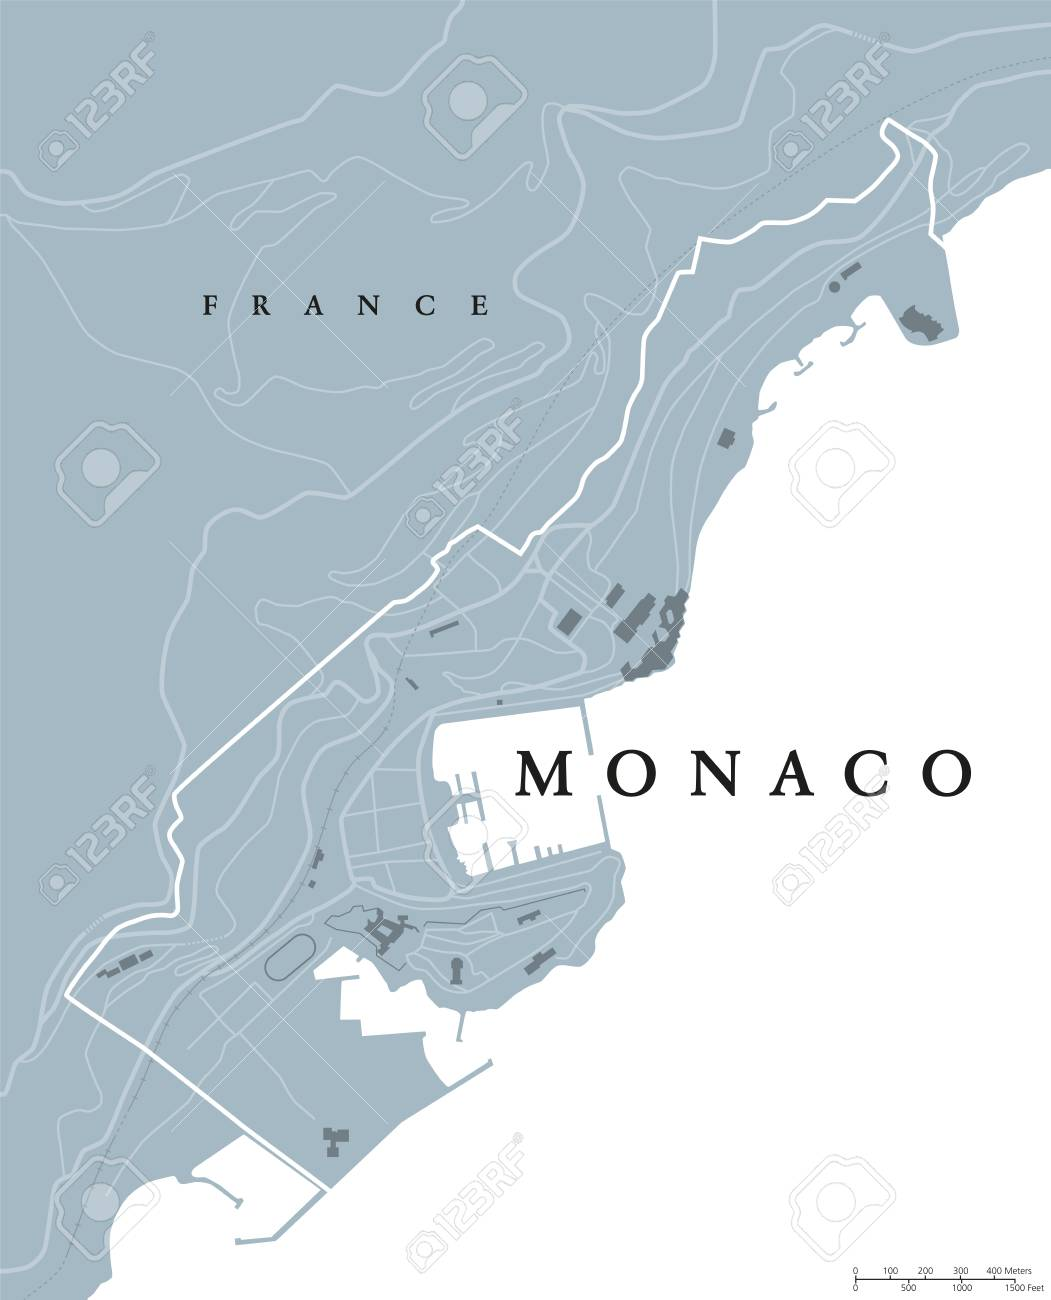 Monaco Political Map Principality Sovereign City And Microstate